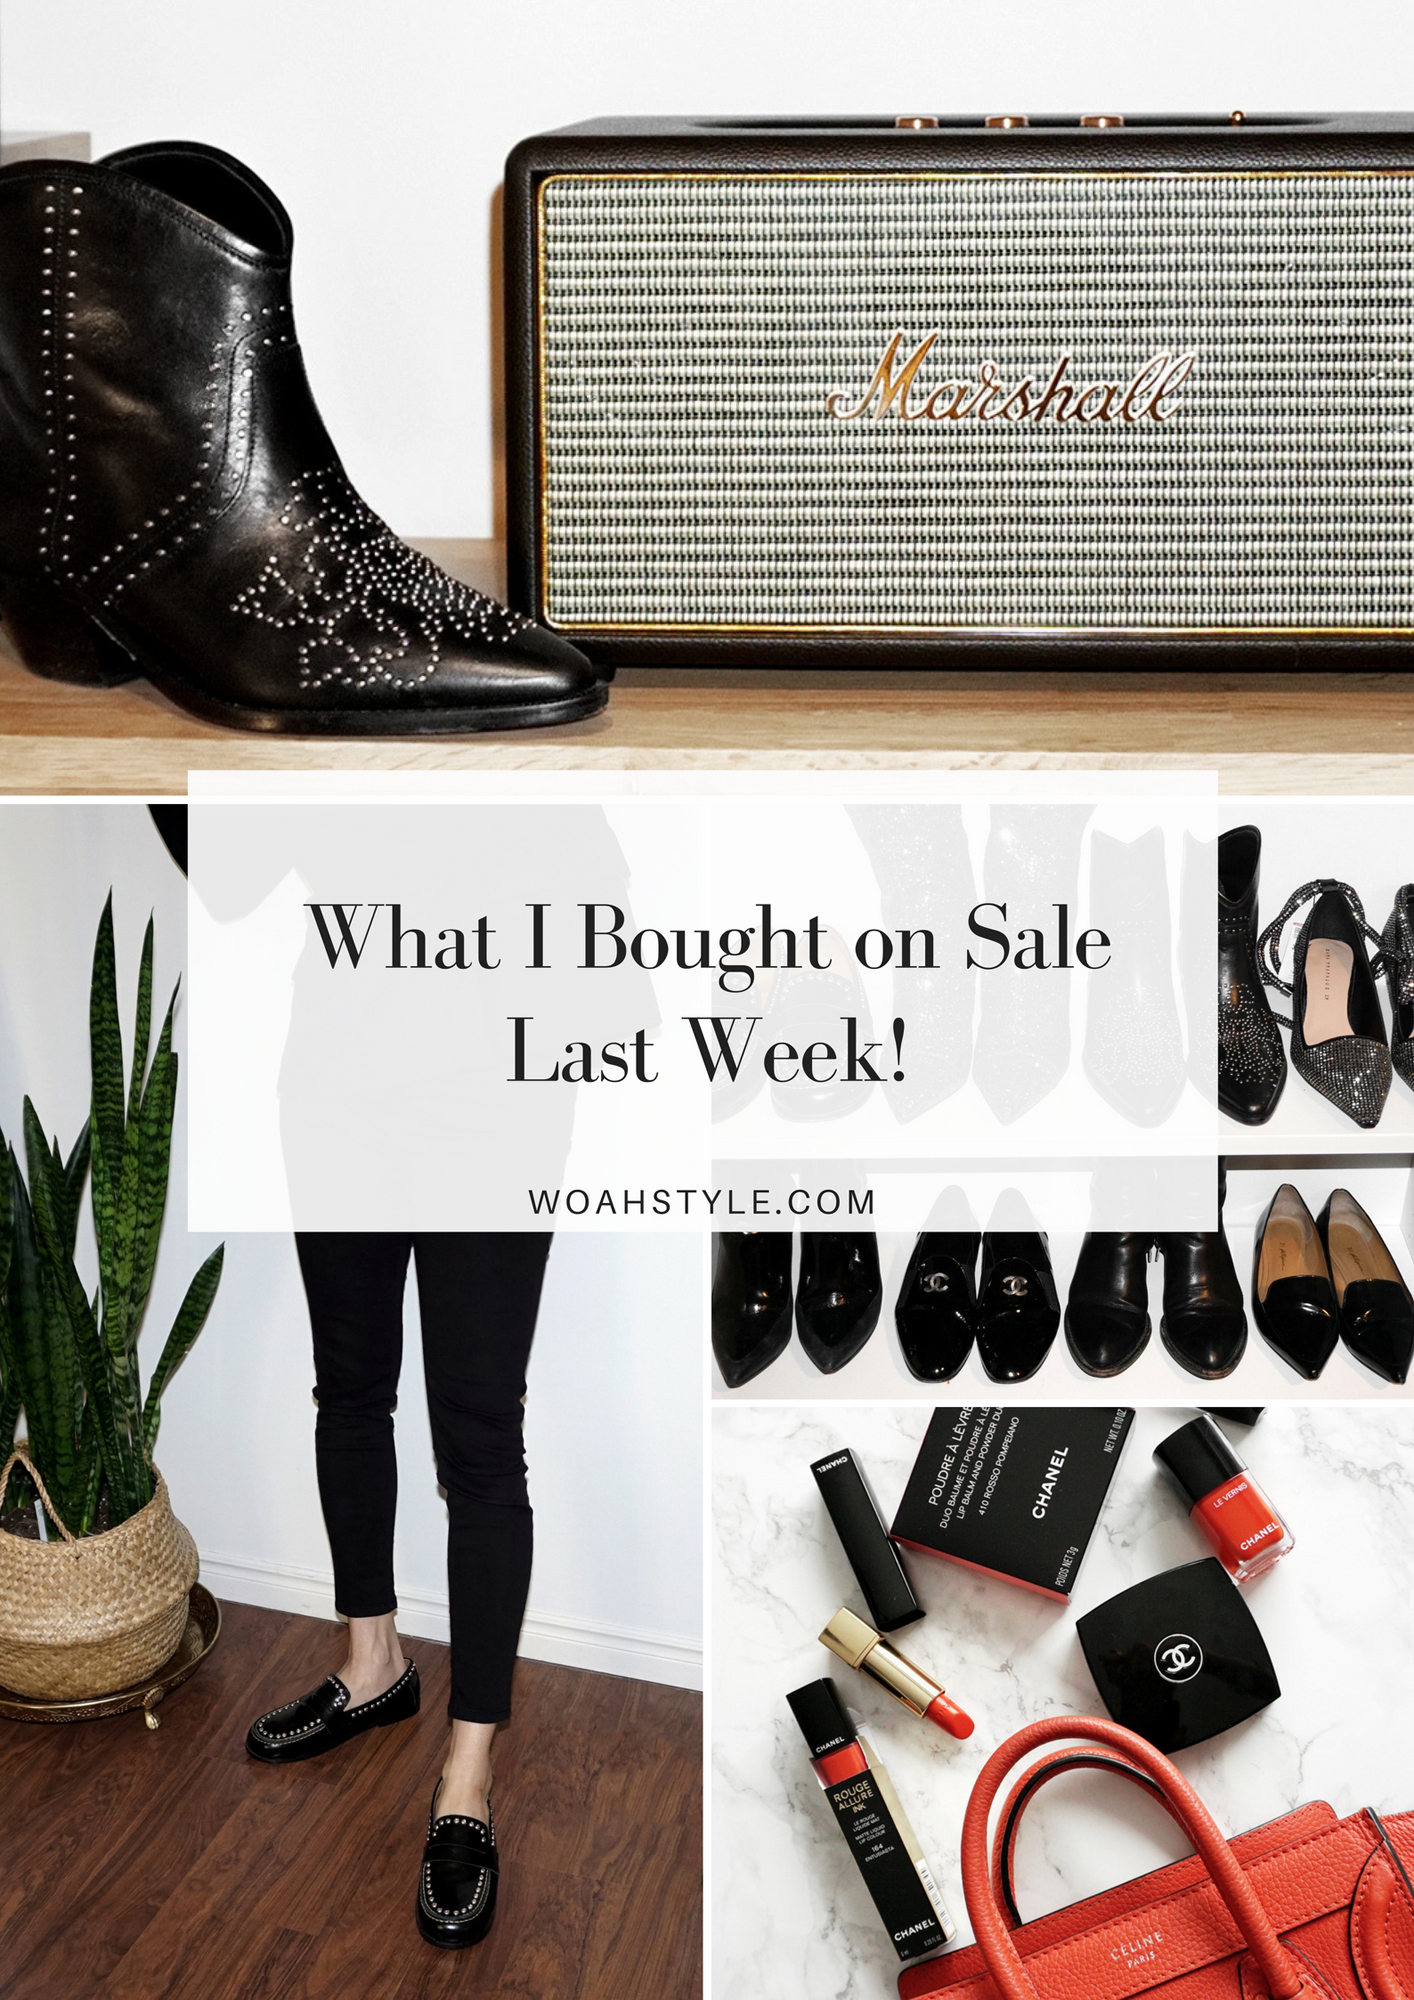 What I Bought On Sale Last Week - Black Dollan Studded Boots, GUNMETAL GLITTER LULIANA BOOTS, Fenzay Studded Loafers, Chanel black patent leather loafers - closet - woahstyle.com - nathalie martin (1).jpg